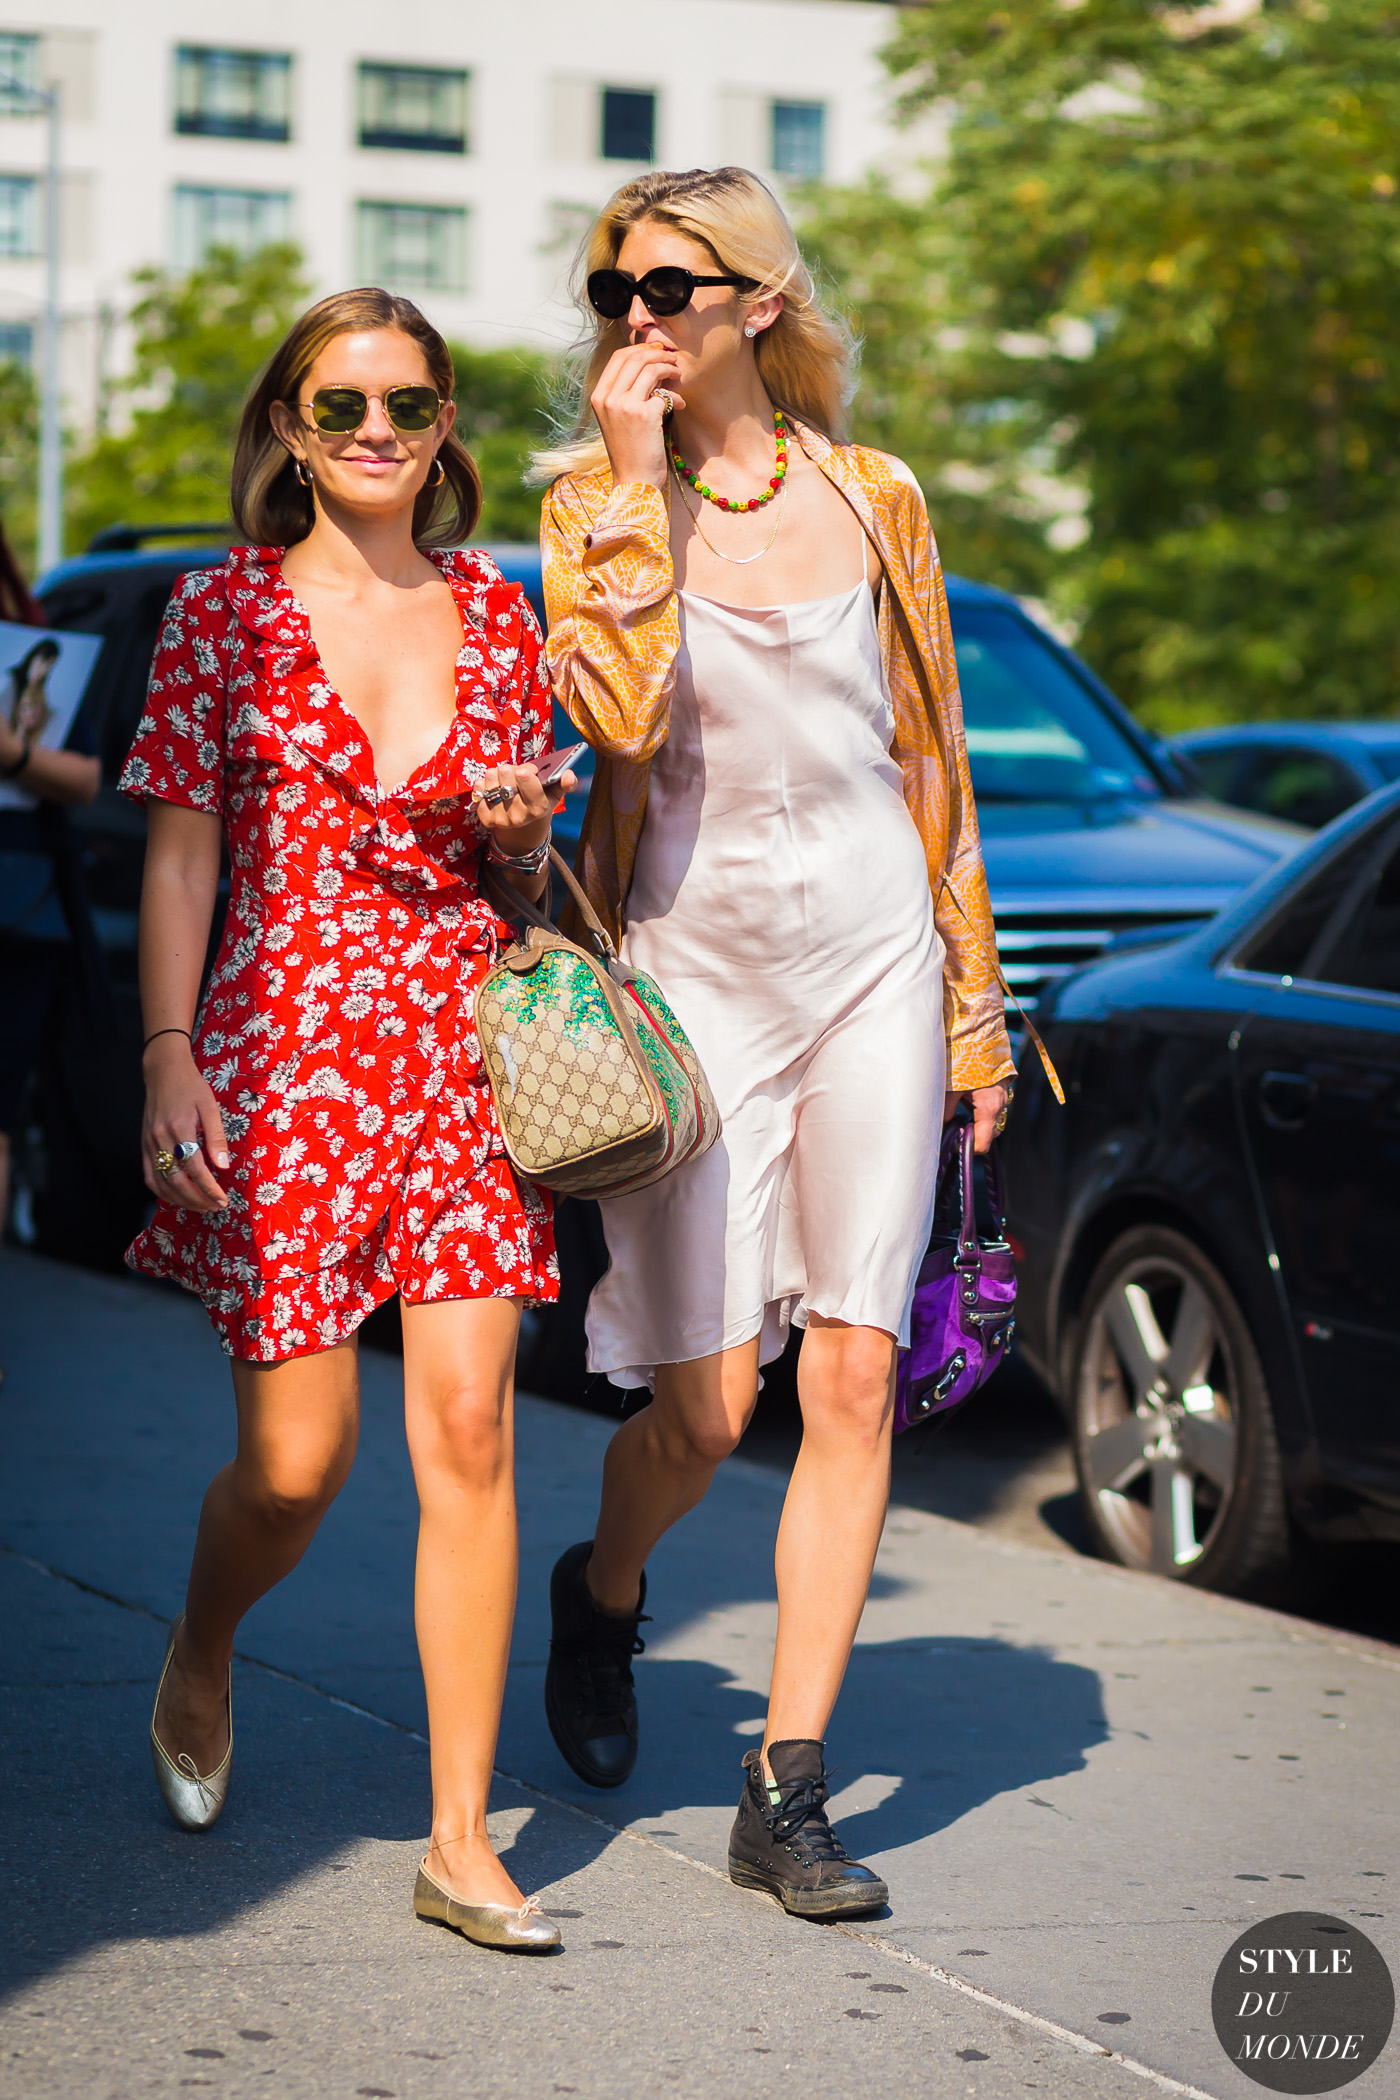 Kelly Connor and Emma Morrison by STYLEDUMONDE Street Style Fashion Photography